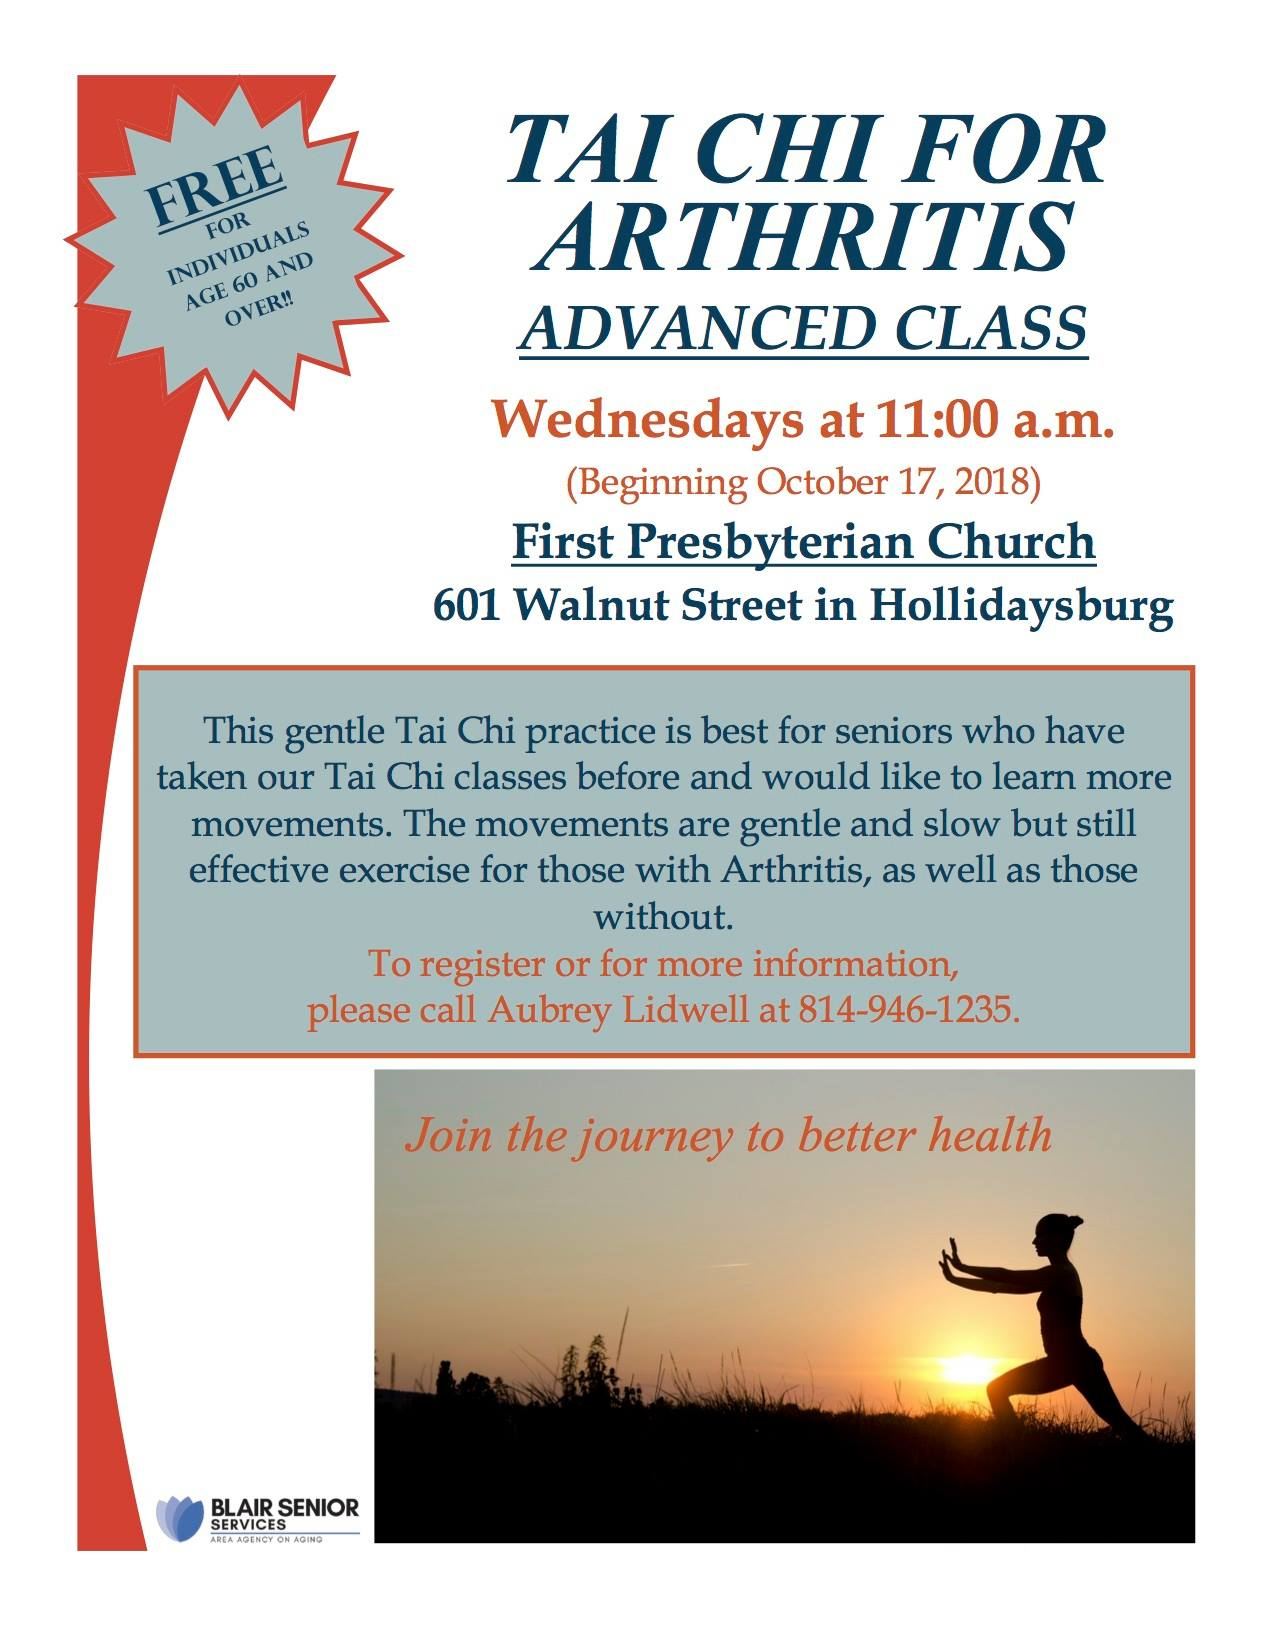 Tai Chi for Arthritis (Advanced Class) @ First Presbyterian Church